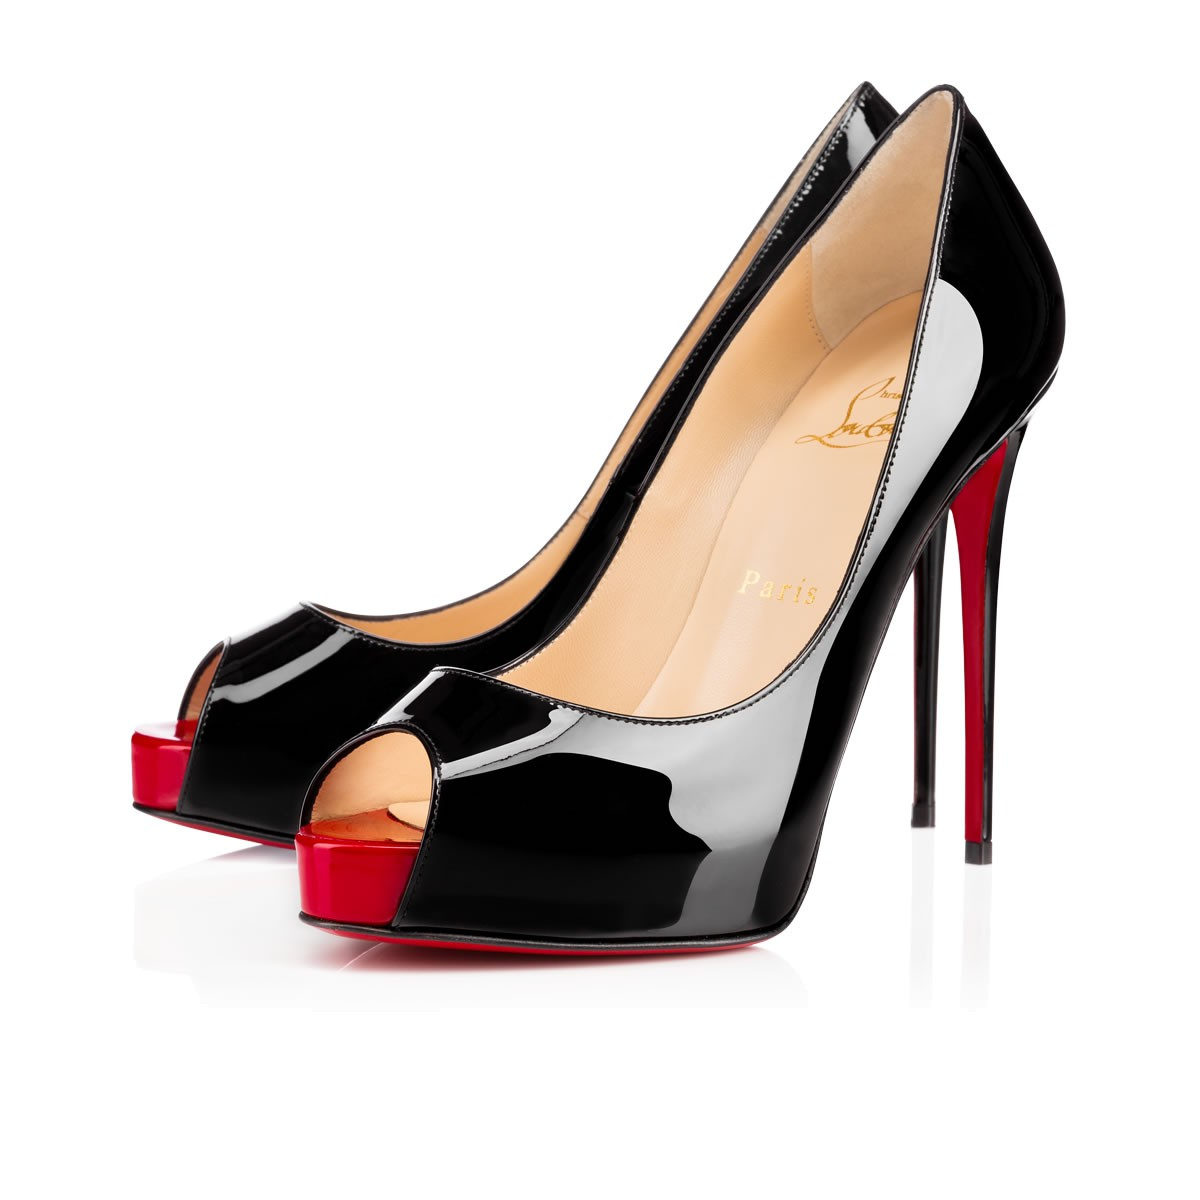 Very Prive 120mm Black/Red Patent Leather